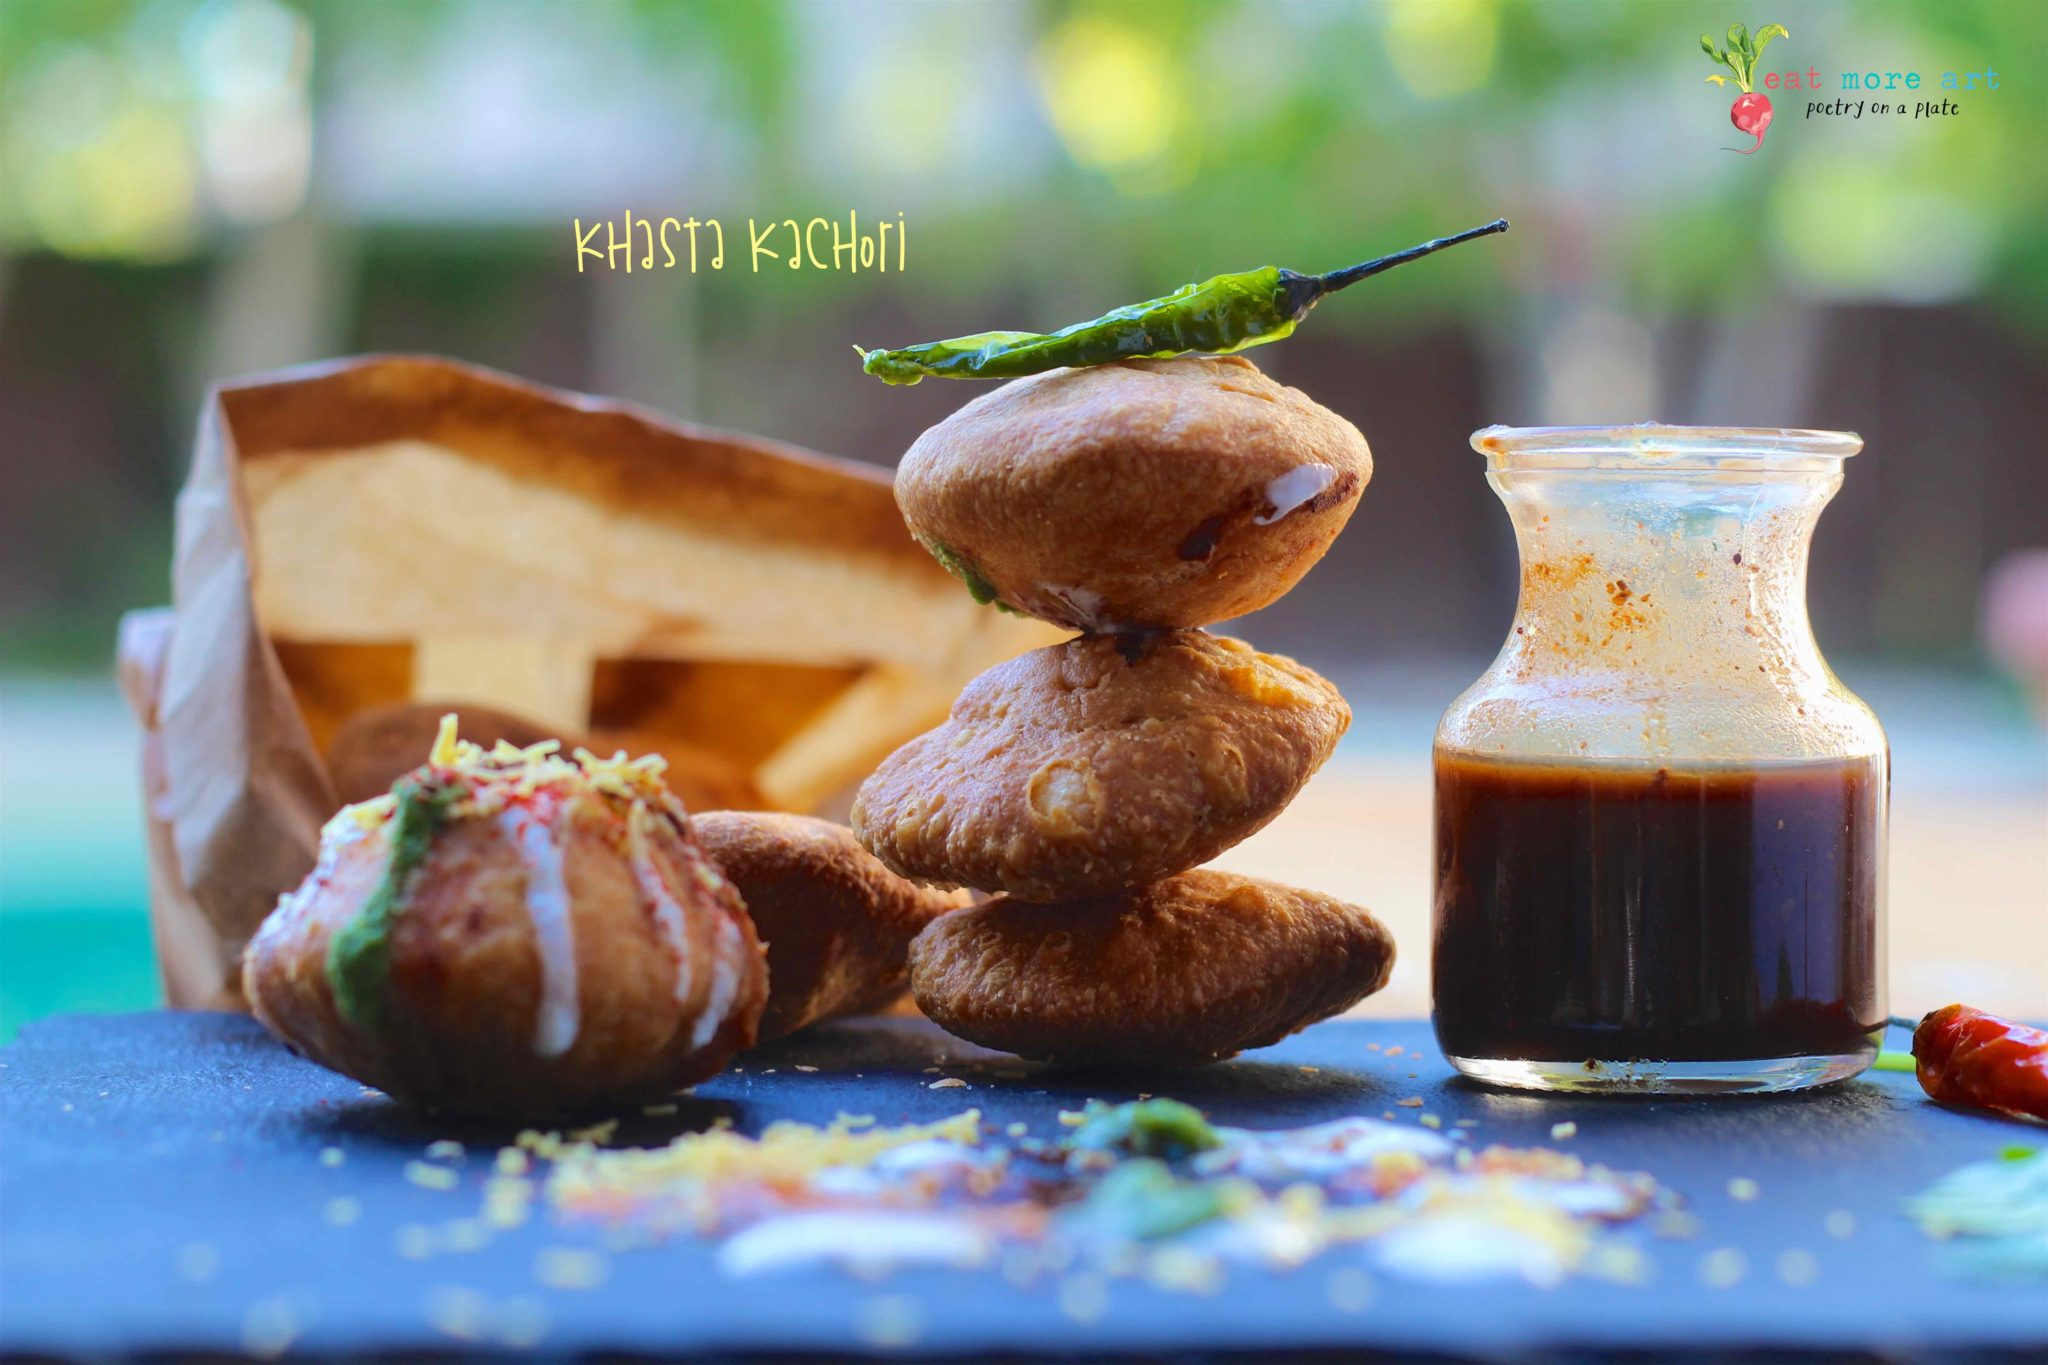 Halwai Style Khasta Kachori | Khasta Kachori Chaat | Eat More Art